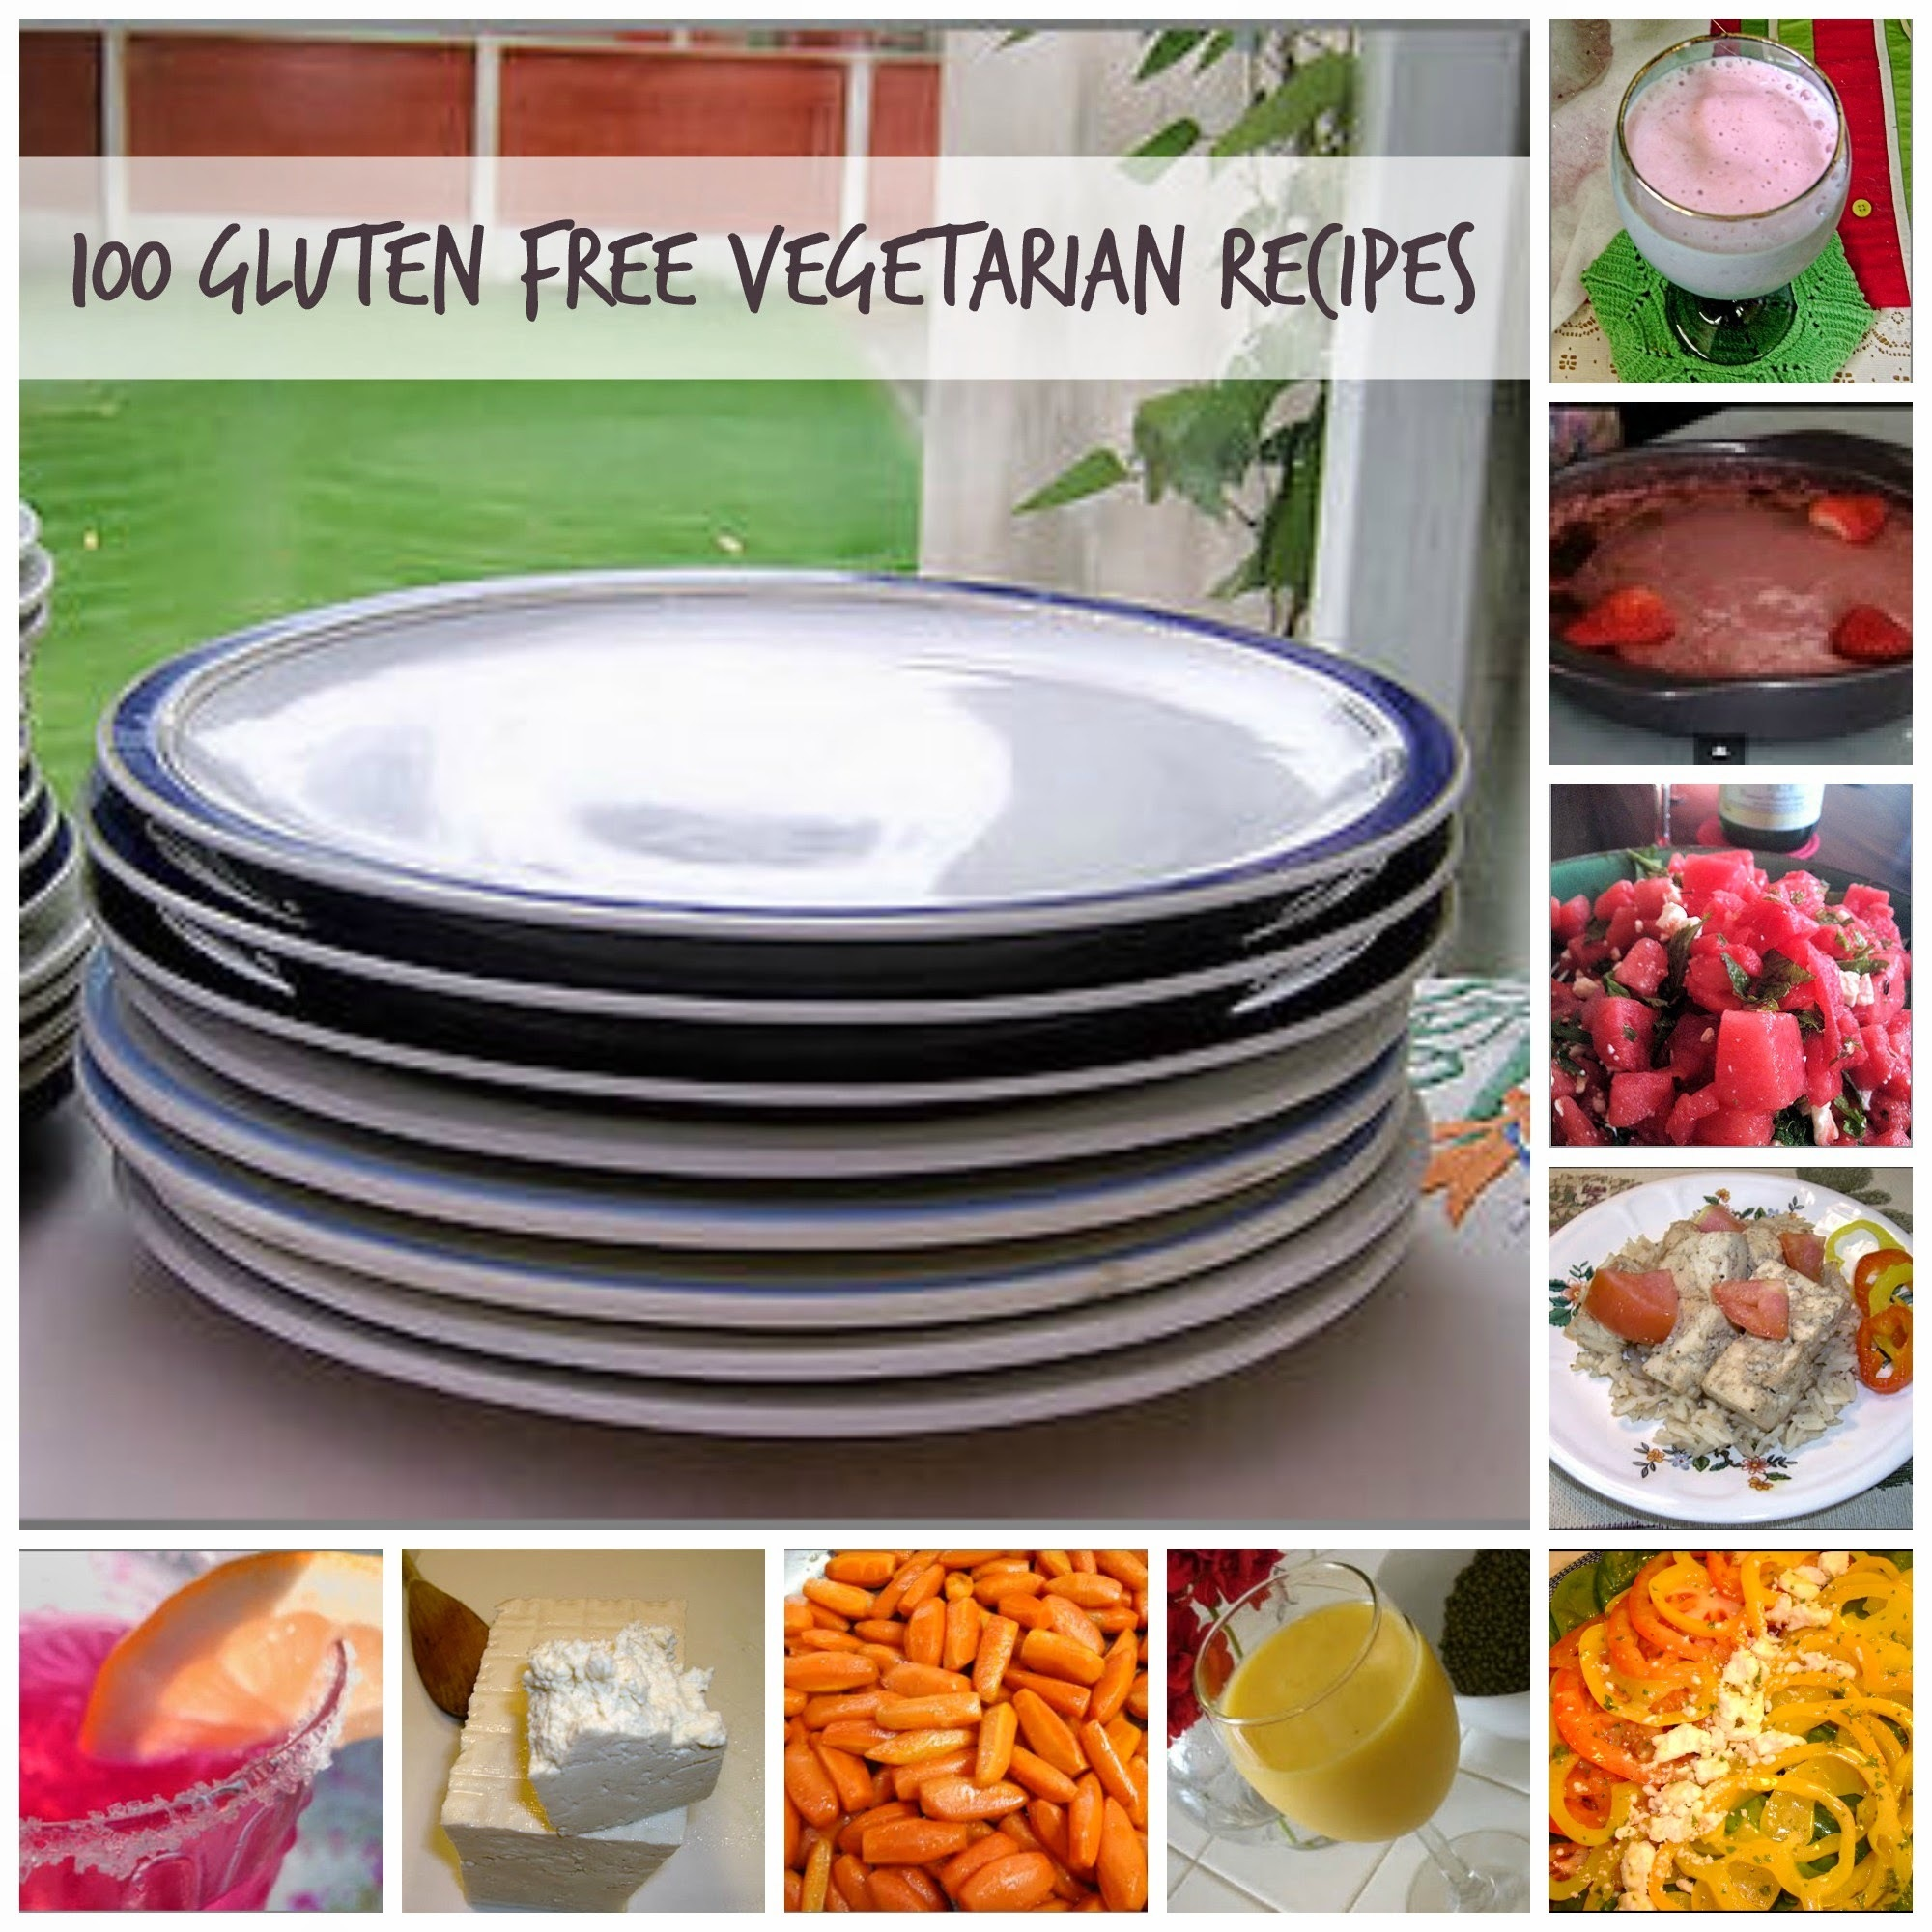 100 Gluten Free Vegetarian Recipes